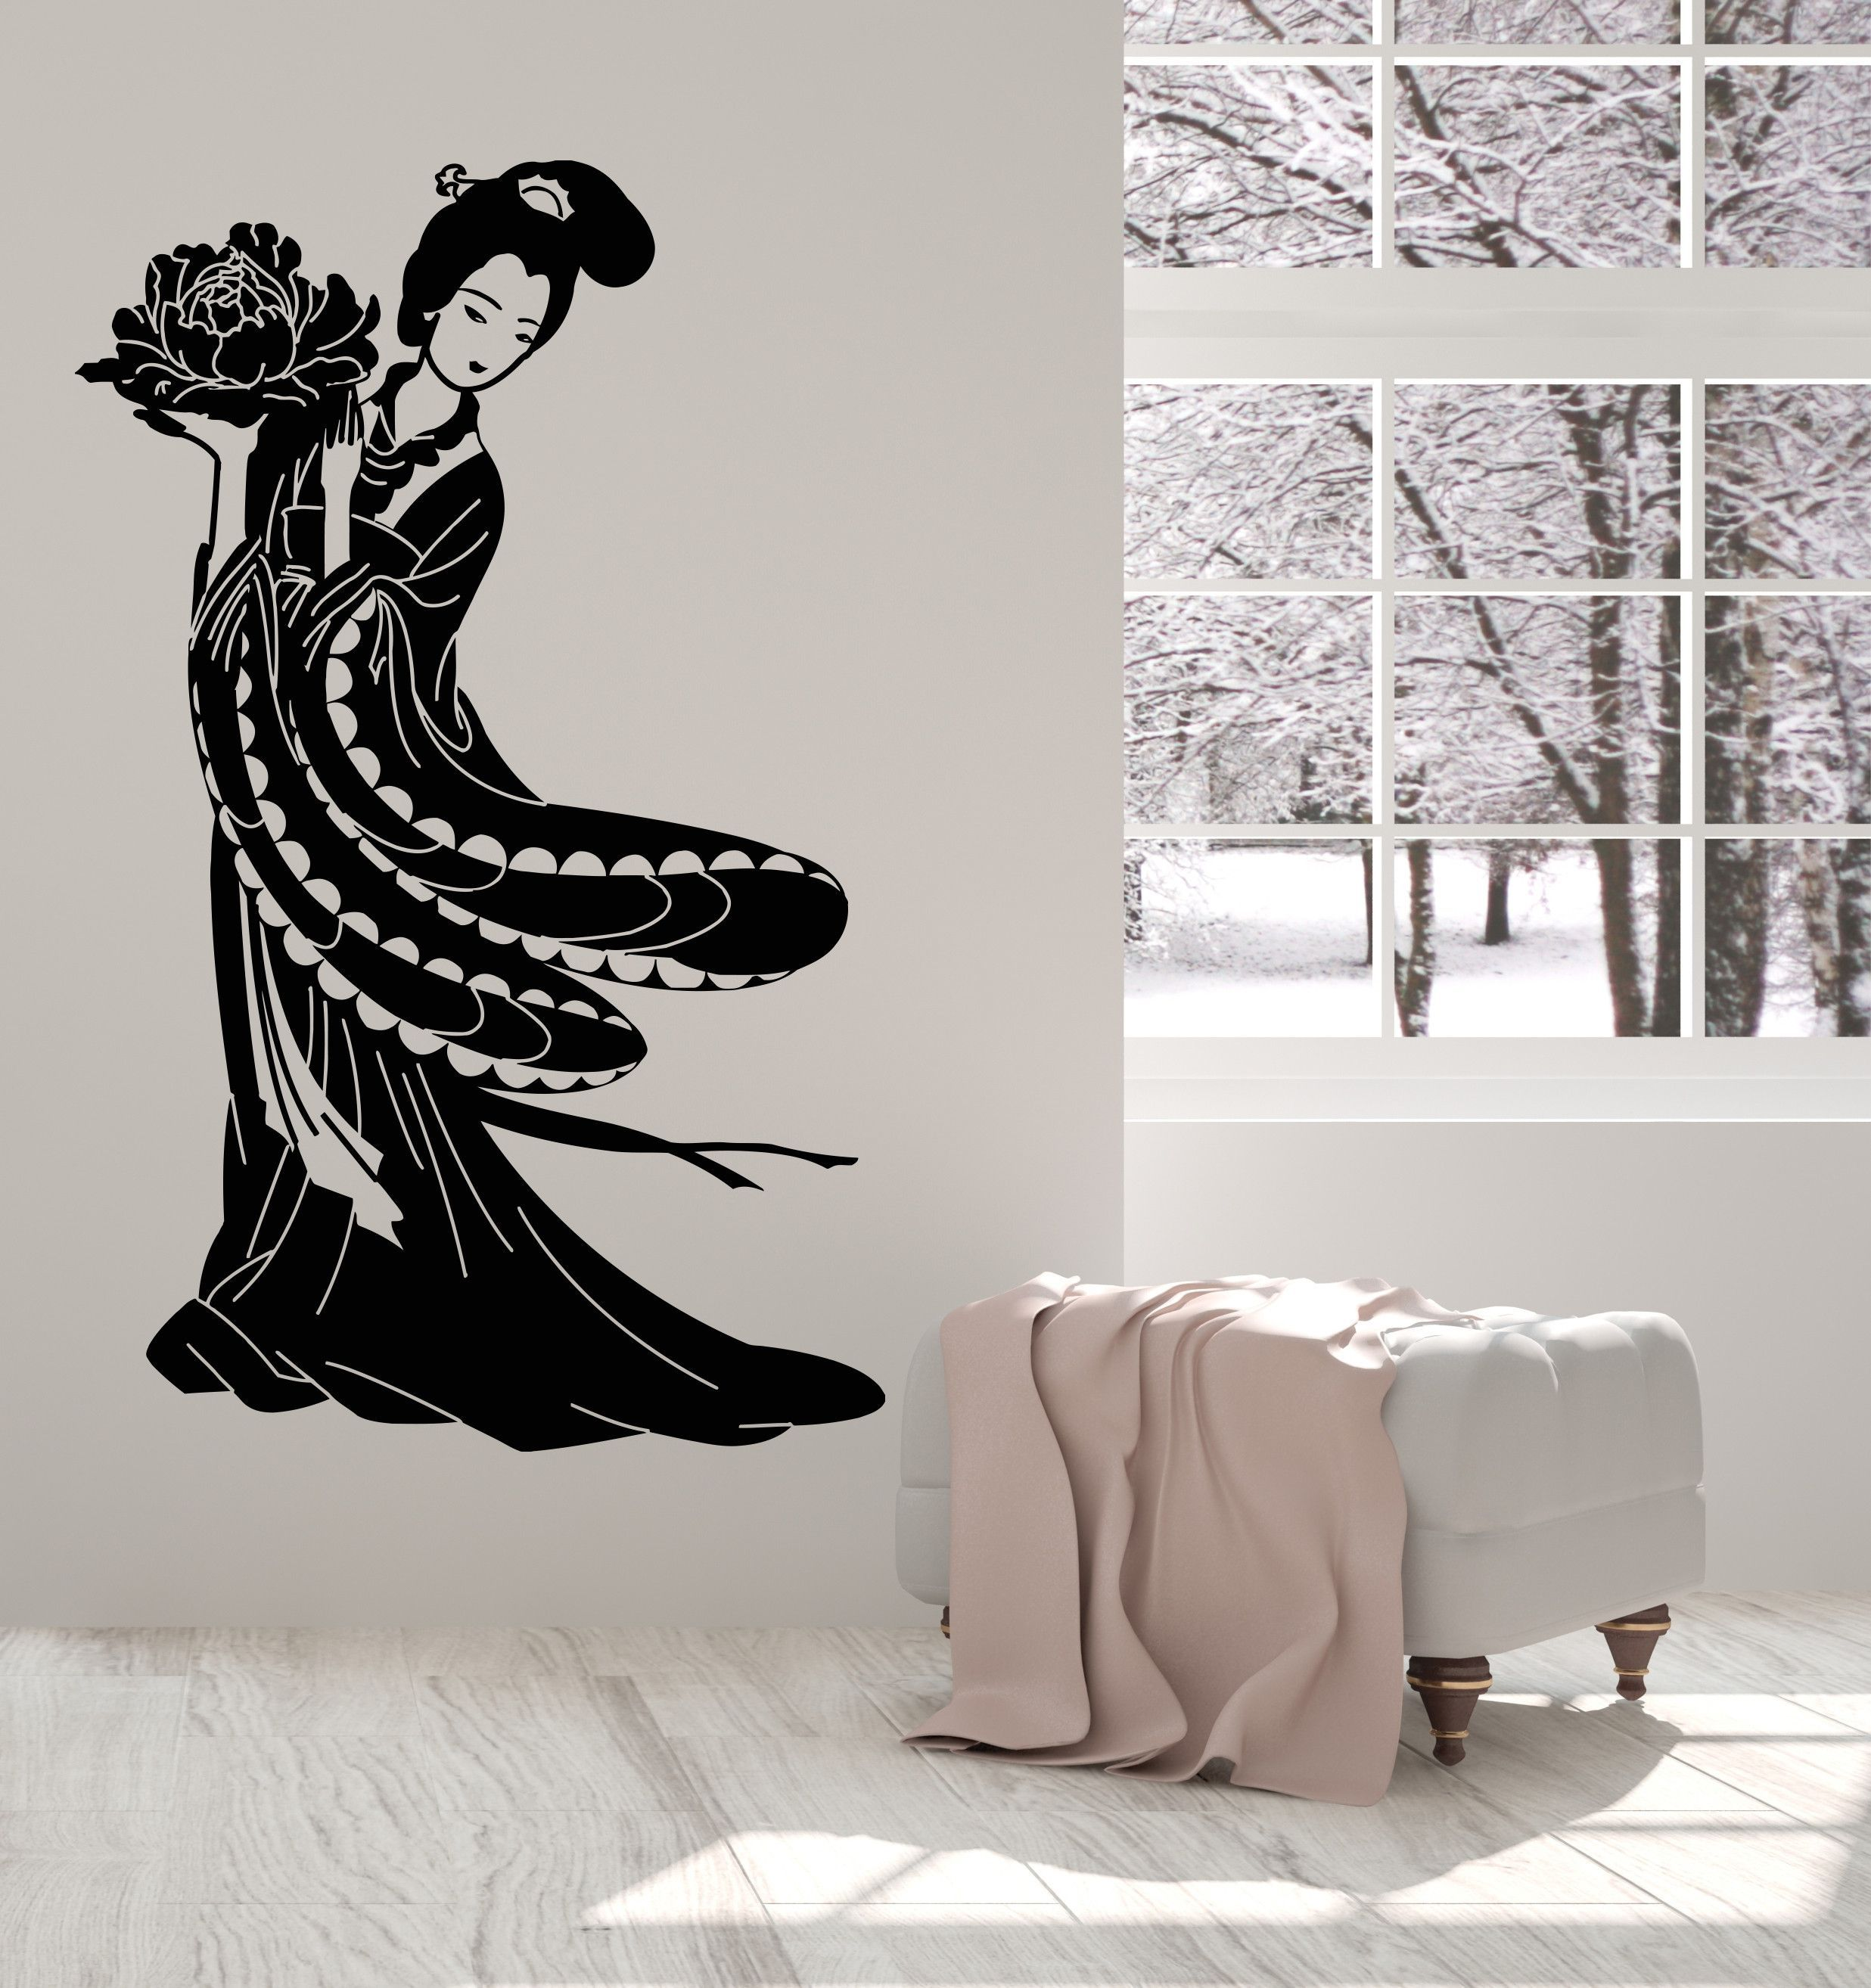 Vinyl Wall Decal Geisha Beautiful Japanese Girl Art Asian Style - Vinyl wall decals asian